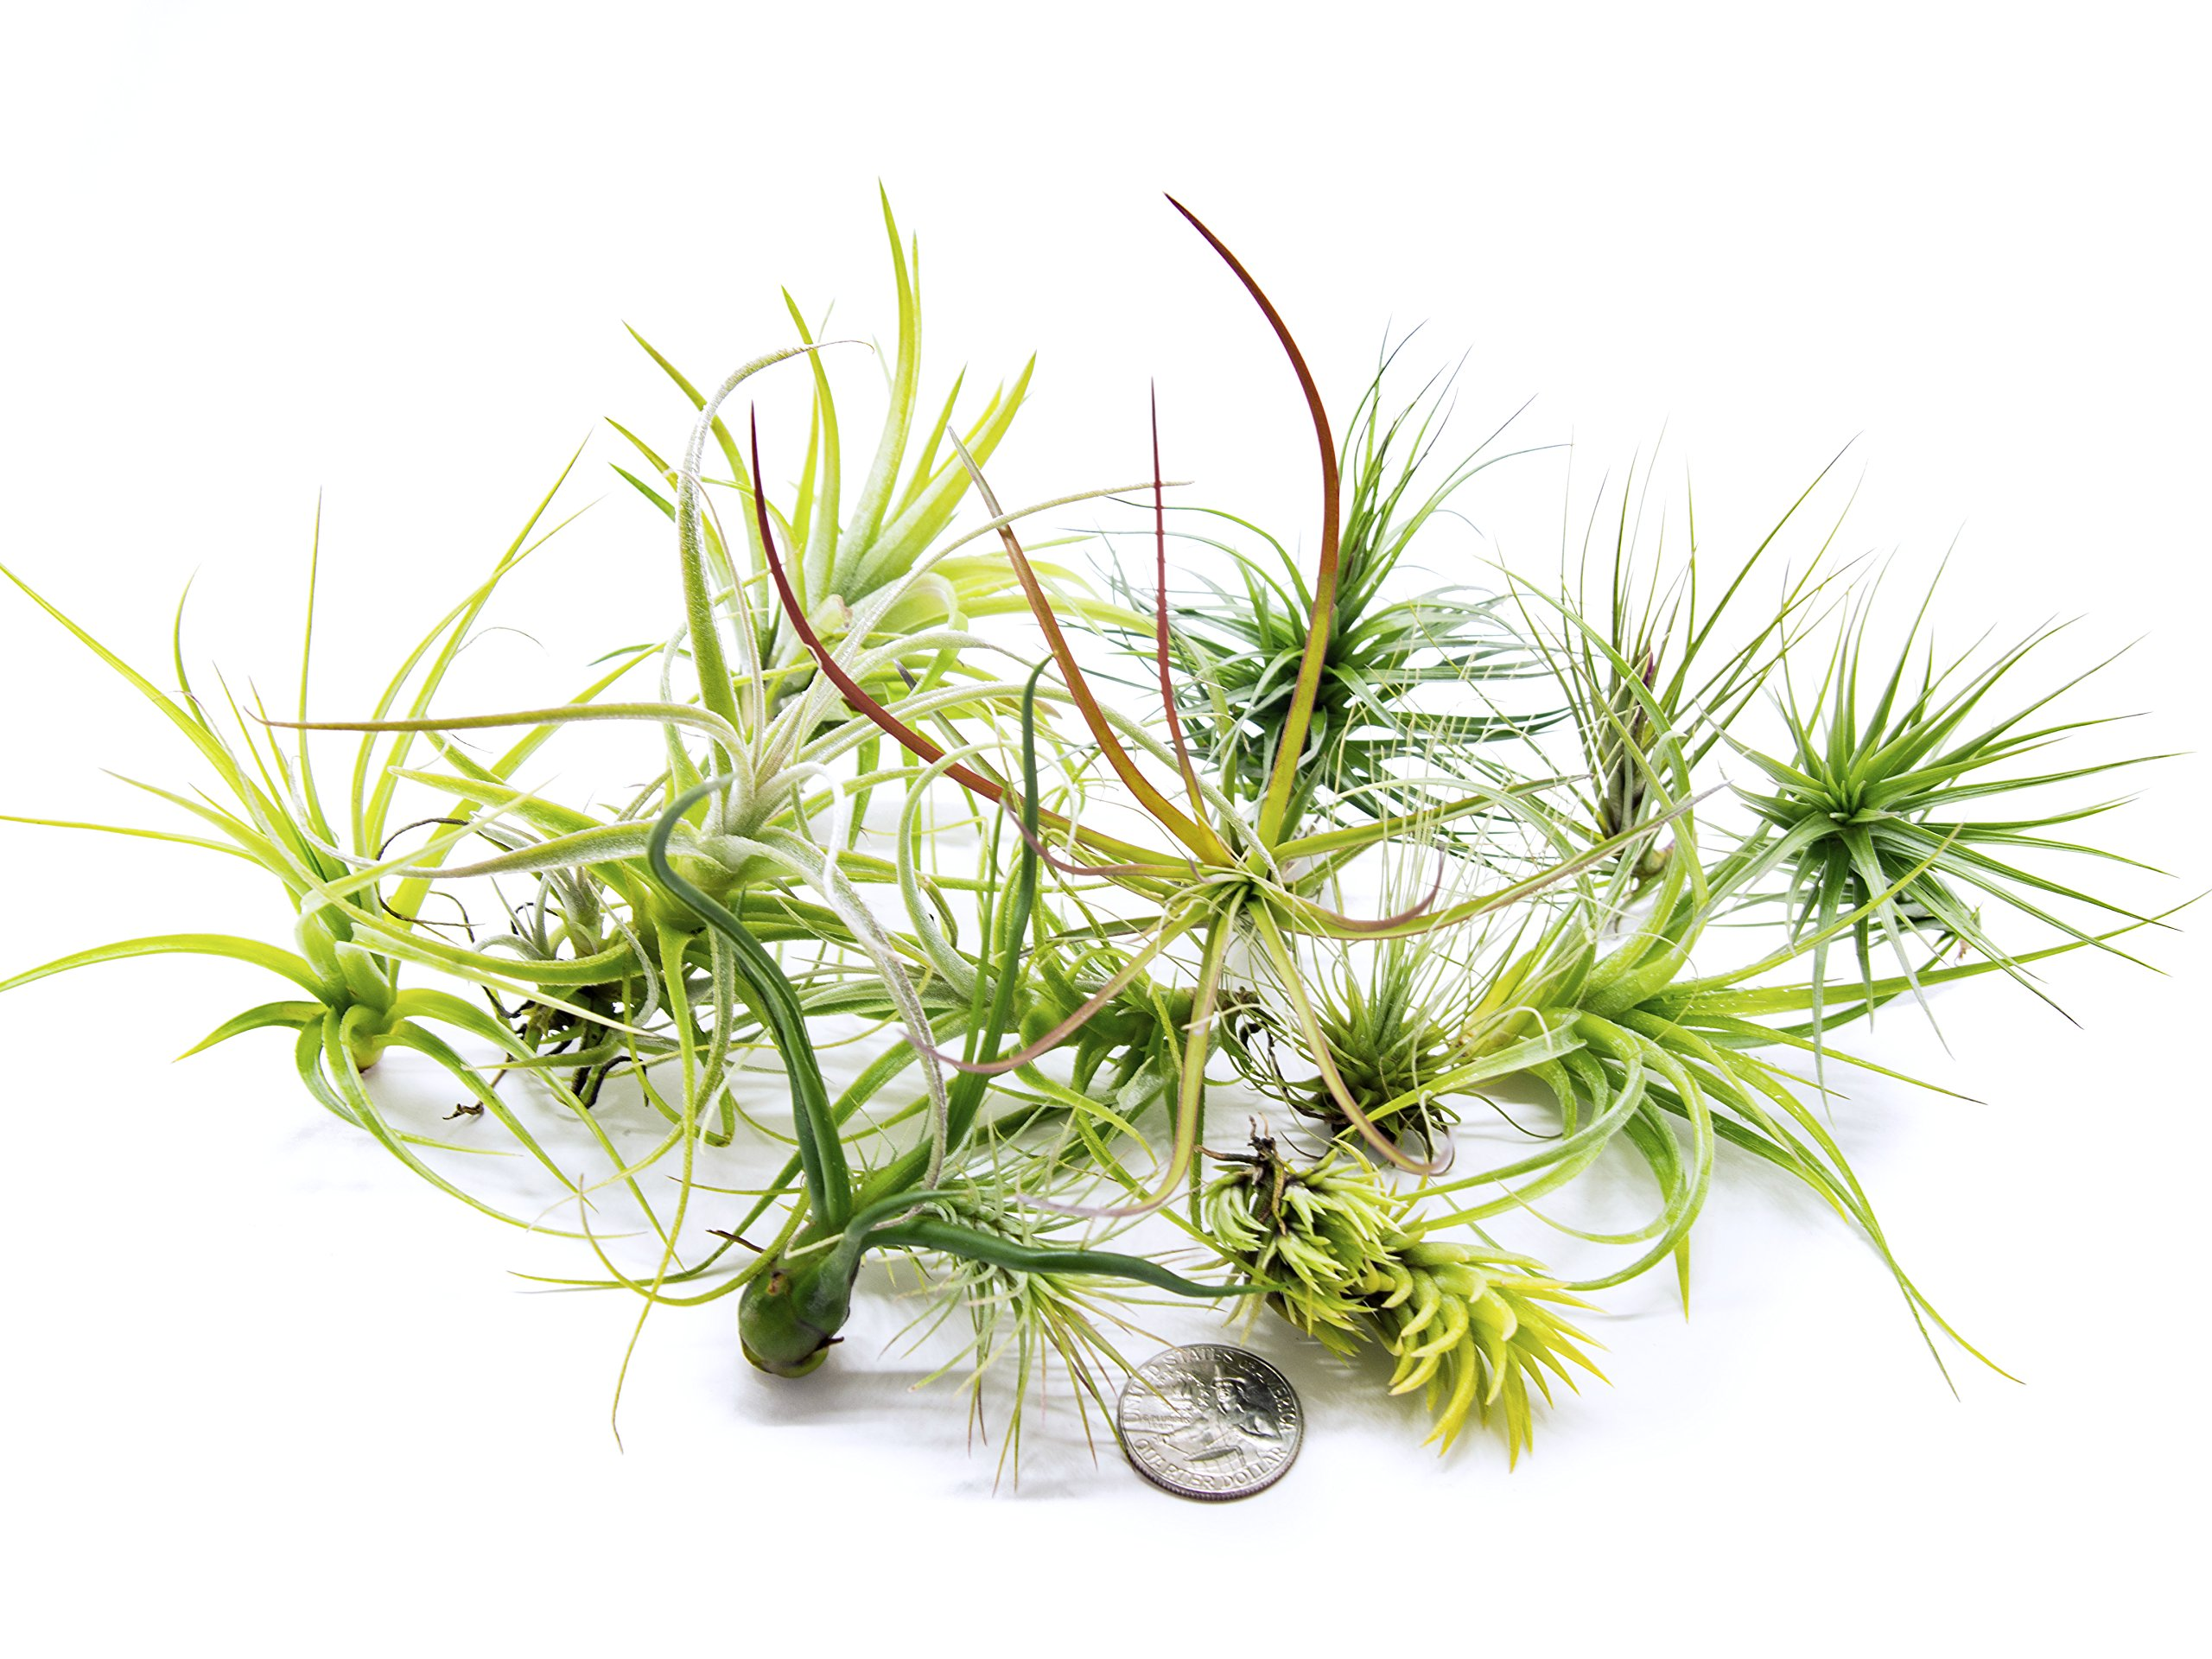 12 Air Plant Variety Pack - Large Tillandsia Terrarium Kit with Spray Bottle Mister for Water/Fertilizer - Assorted Species of Live Tillandsias, 4 to 10 Inch Indoor House Plants by Aquatic Arts by Plants for Pets